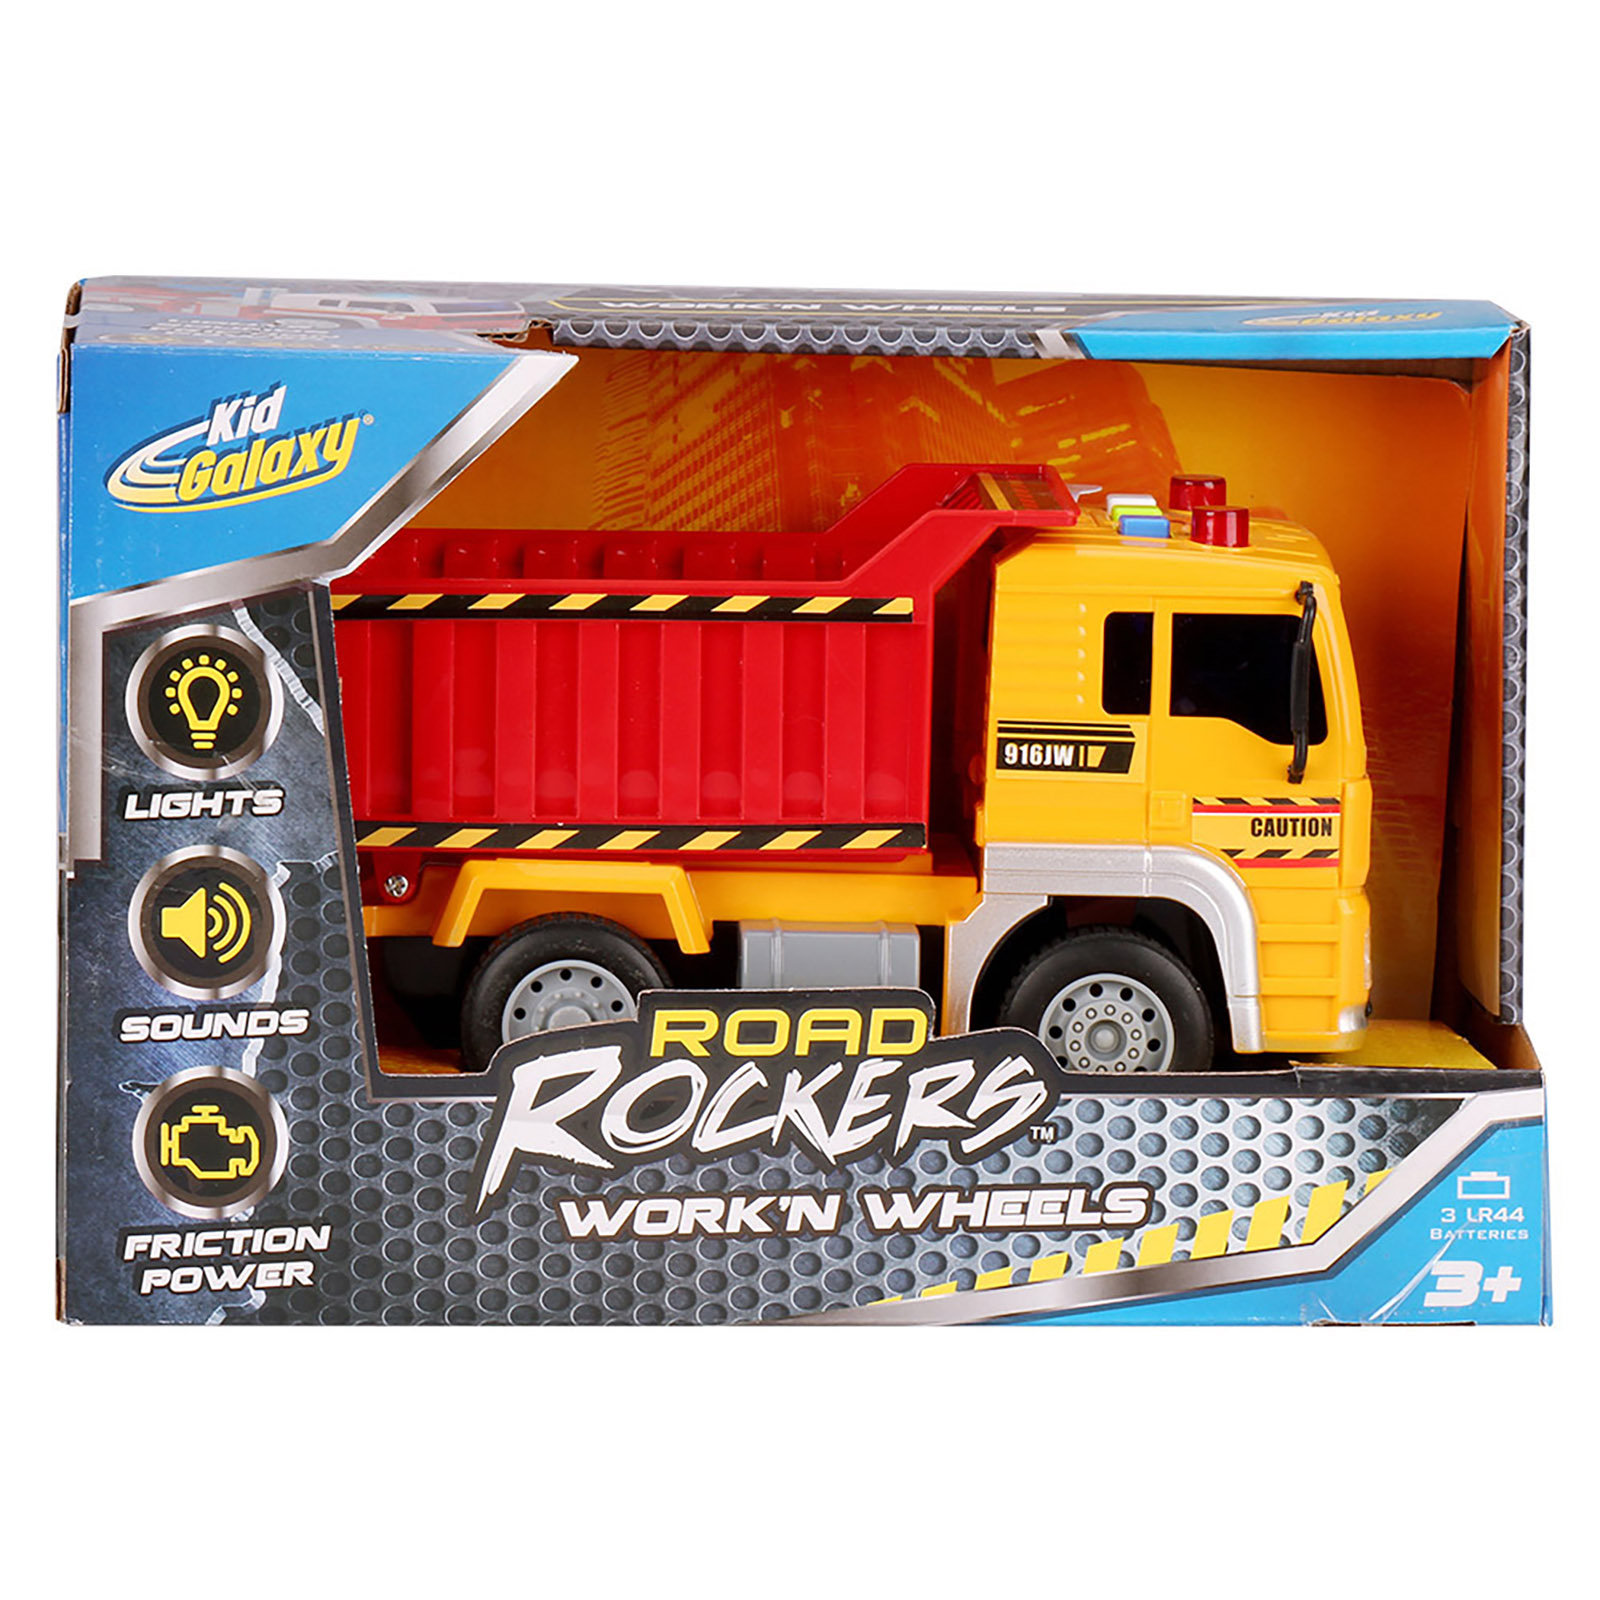 Road Rockers Work N Wheels Dump Truck W Lights Sounds Teachers Pet